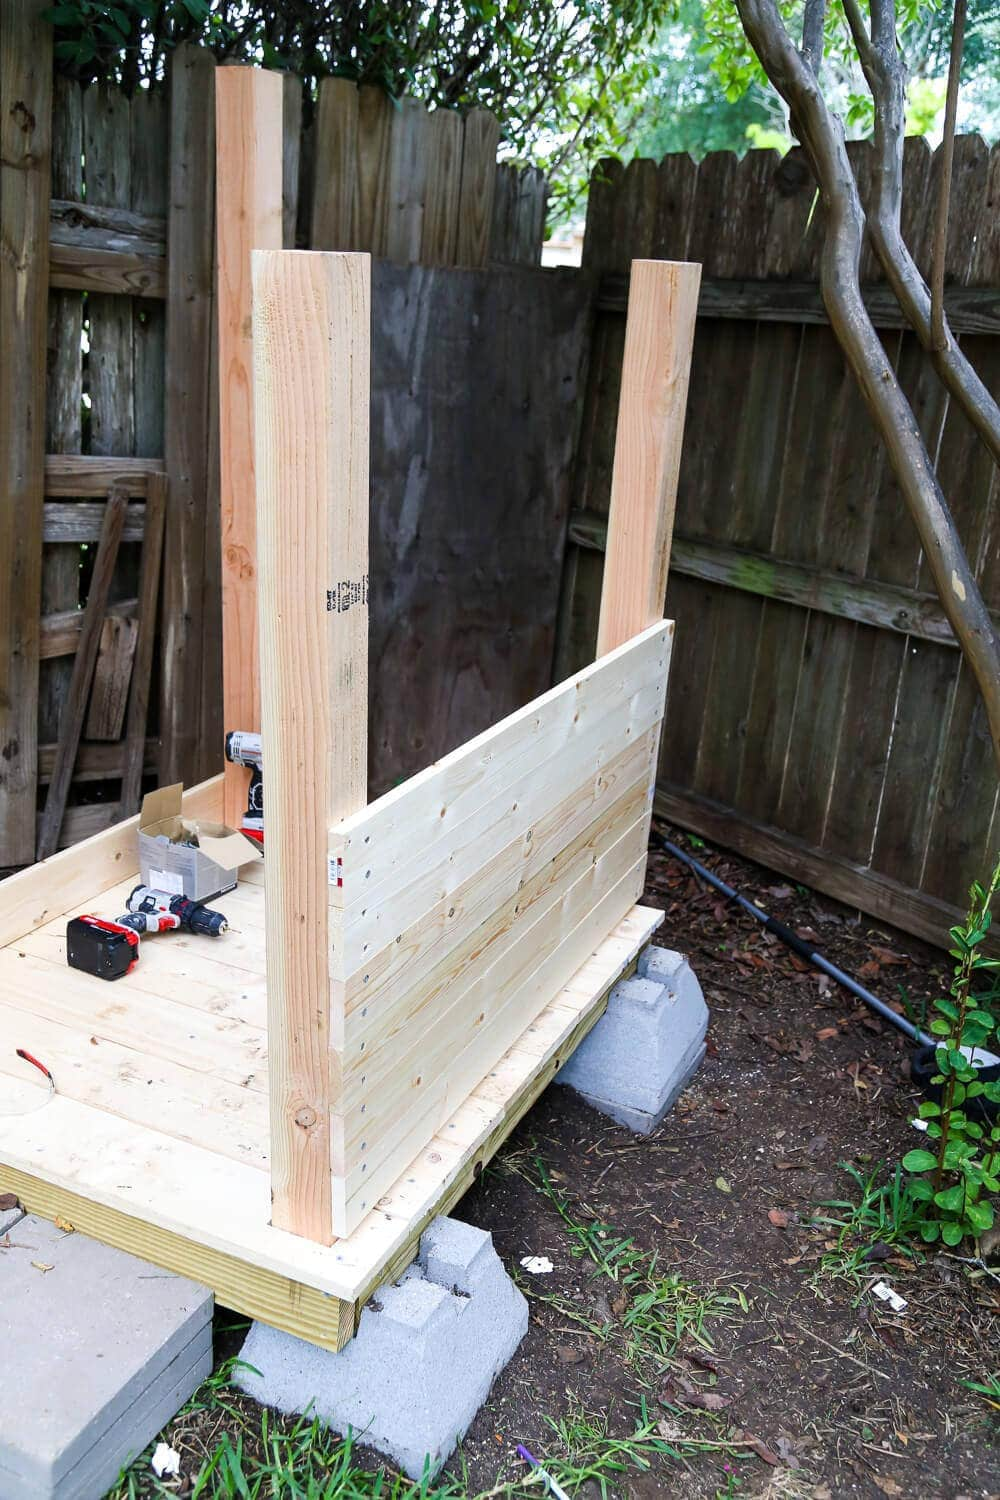 Walls for backyard playhouse